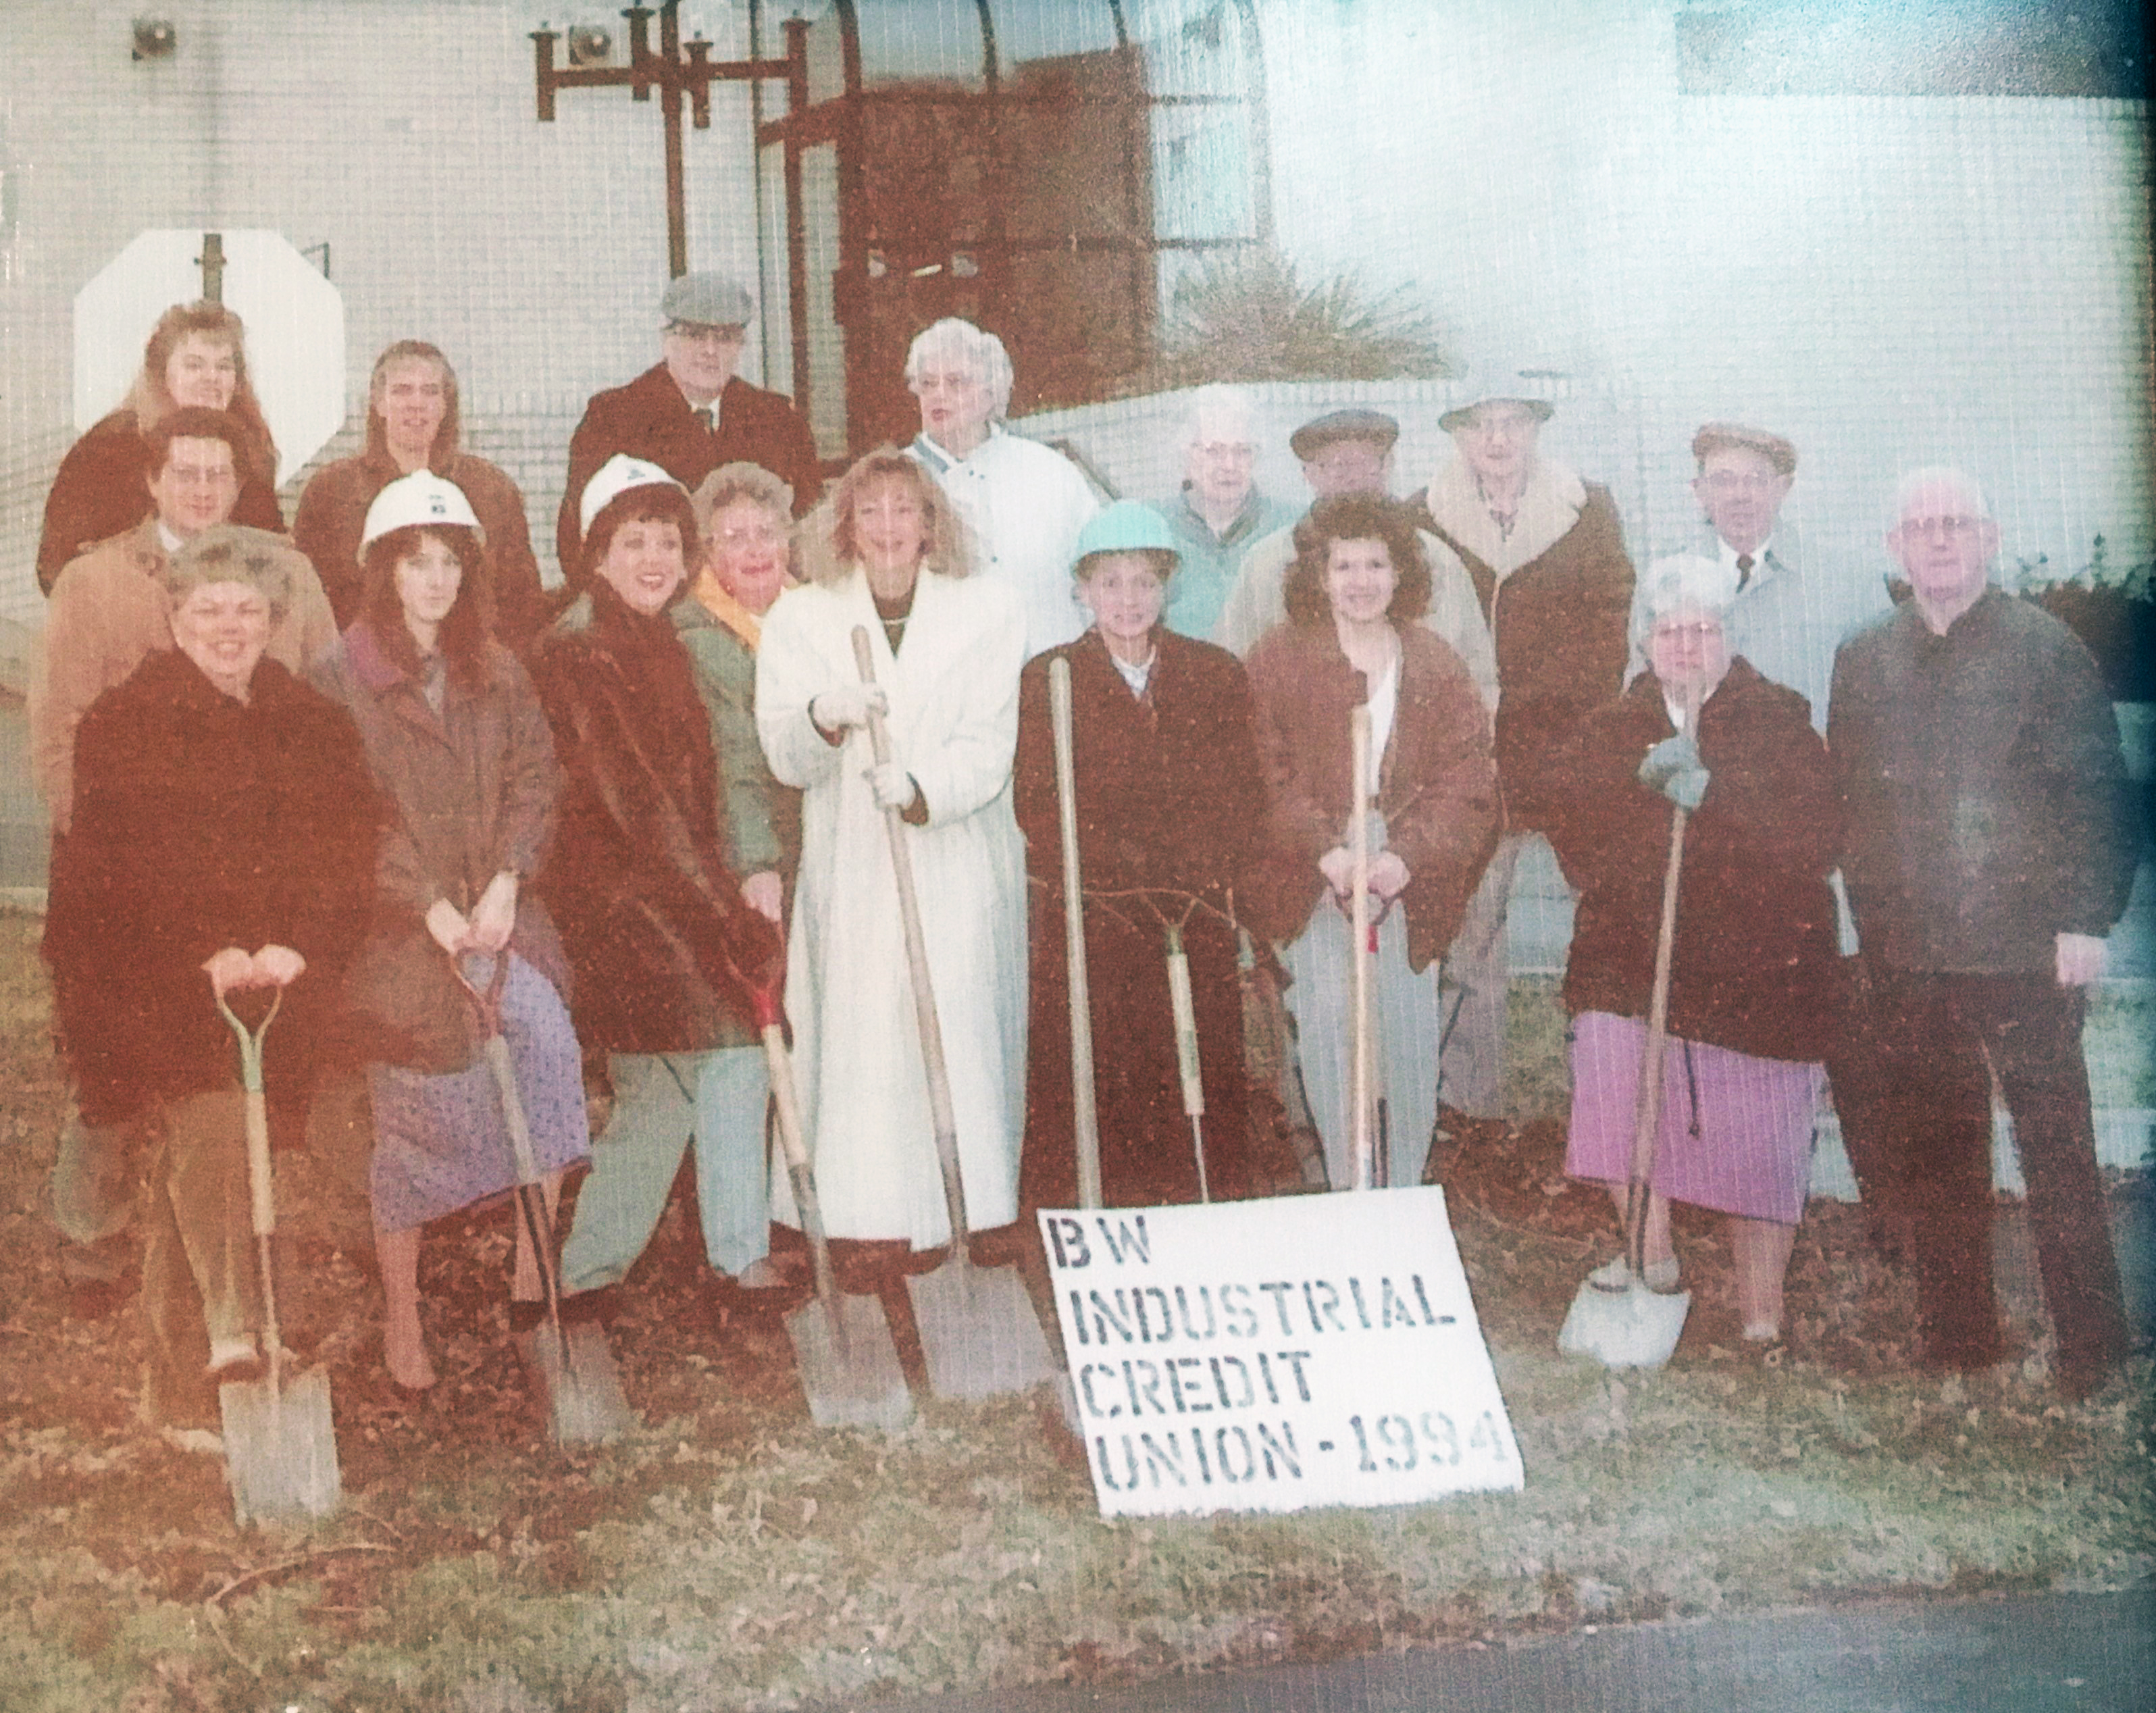 Image: Old photo of branch expansion groundbreaking at BW Credit Union in 1994